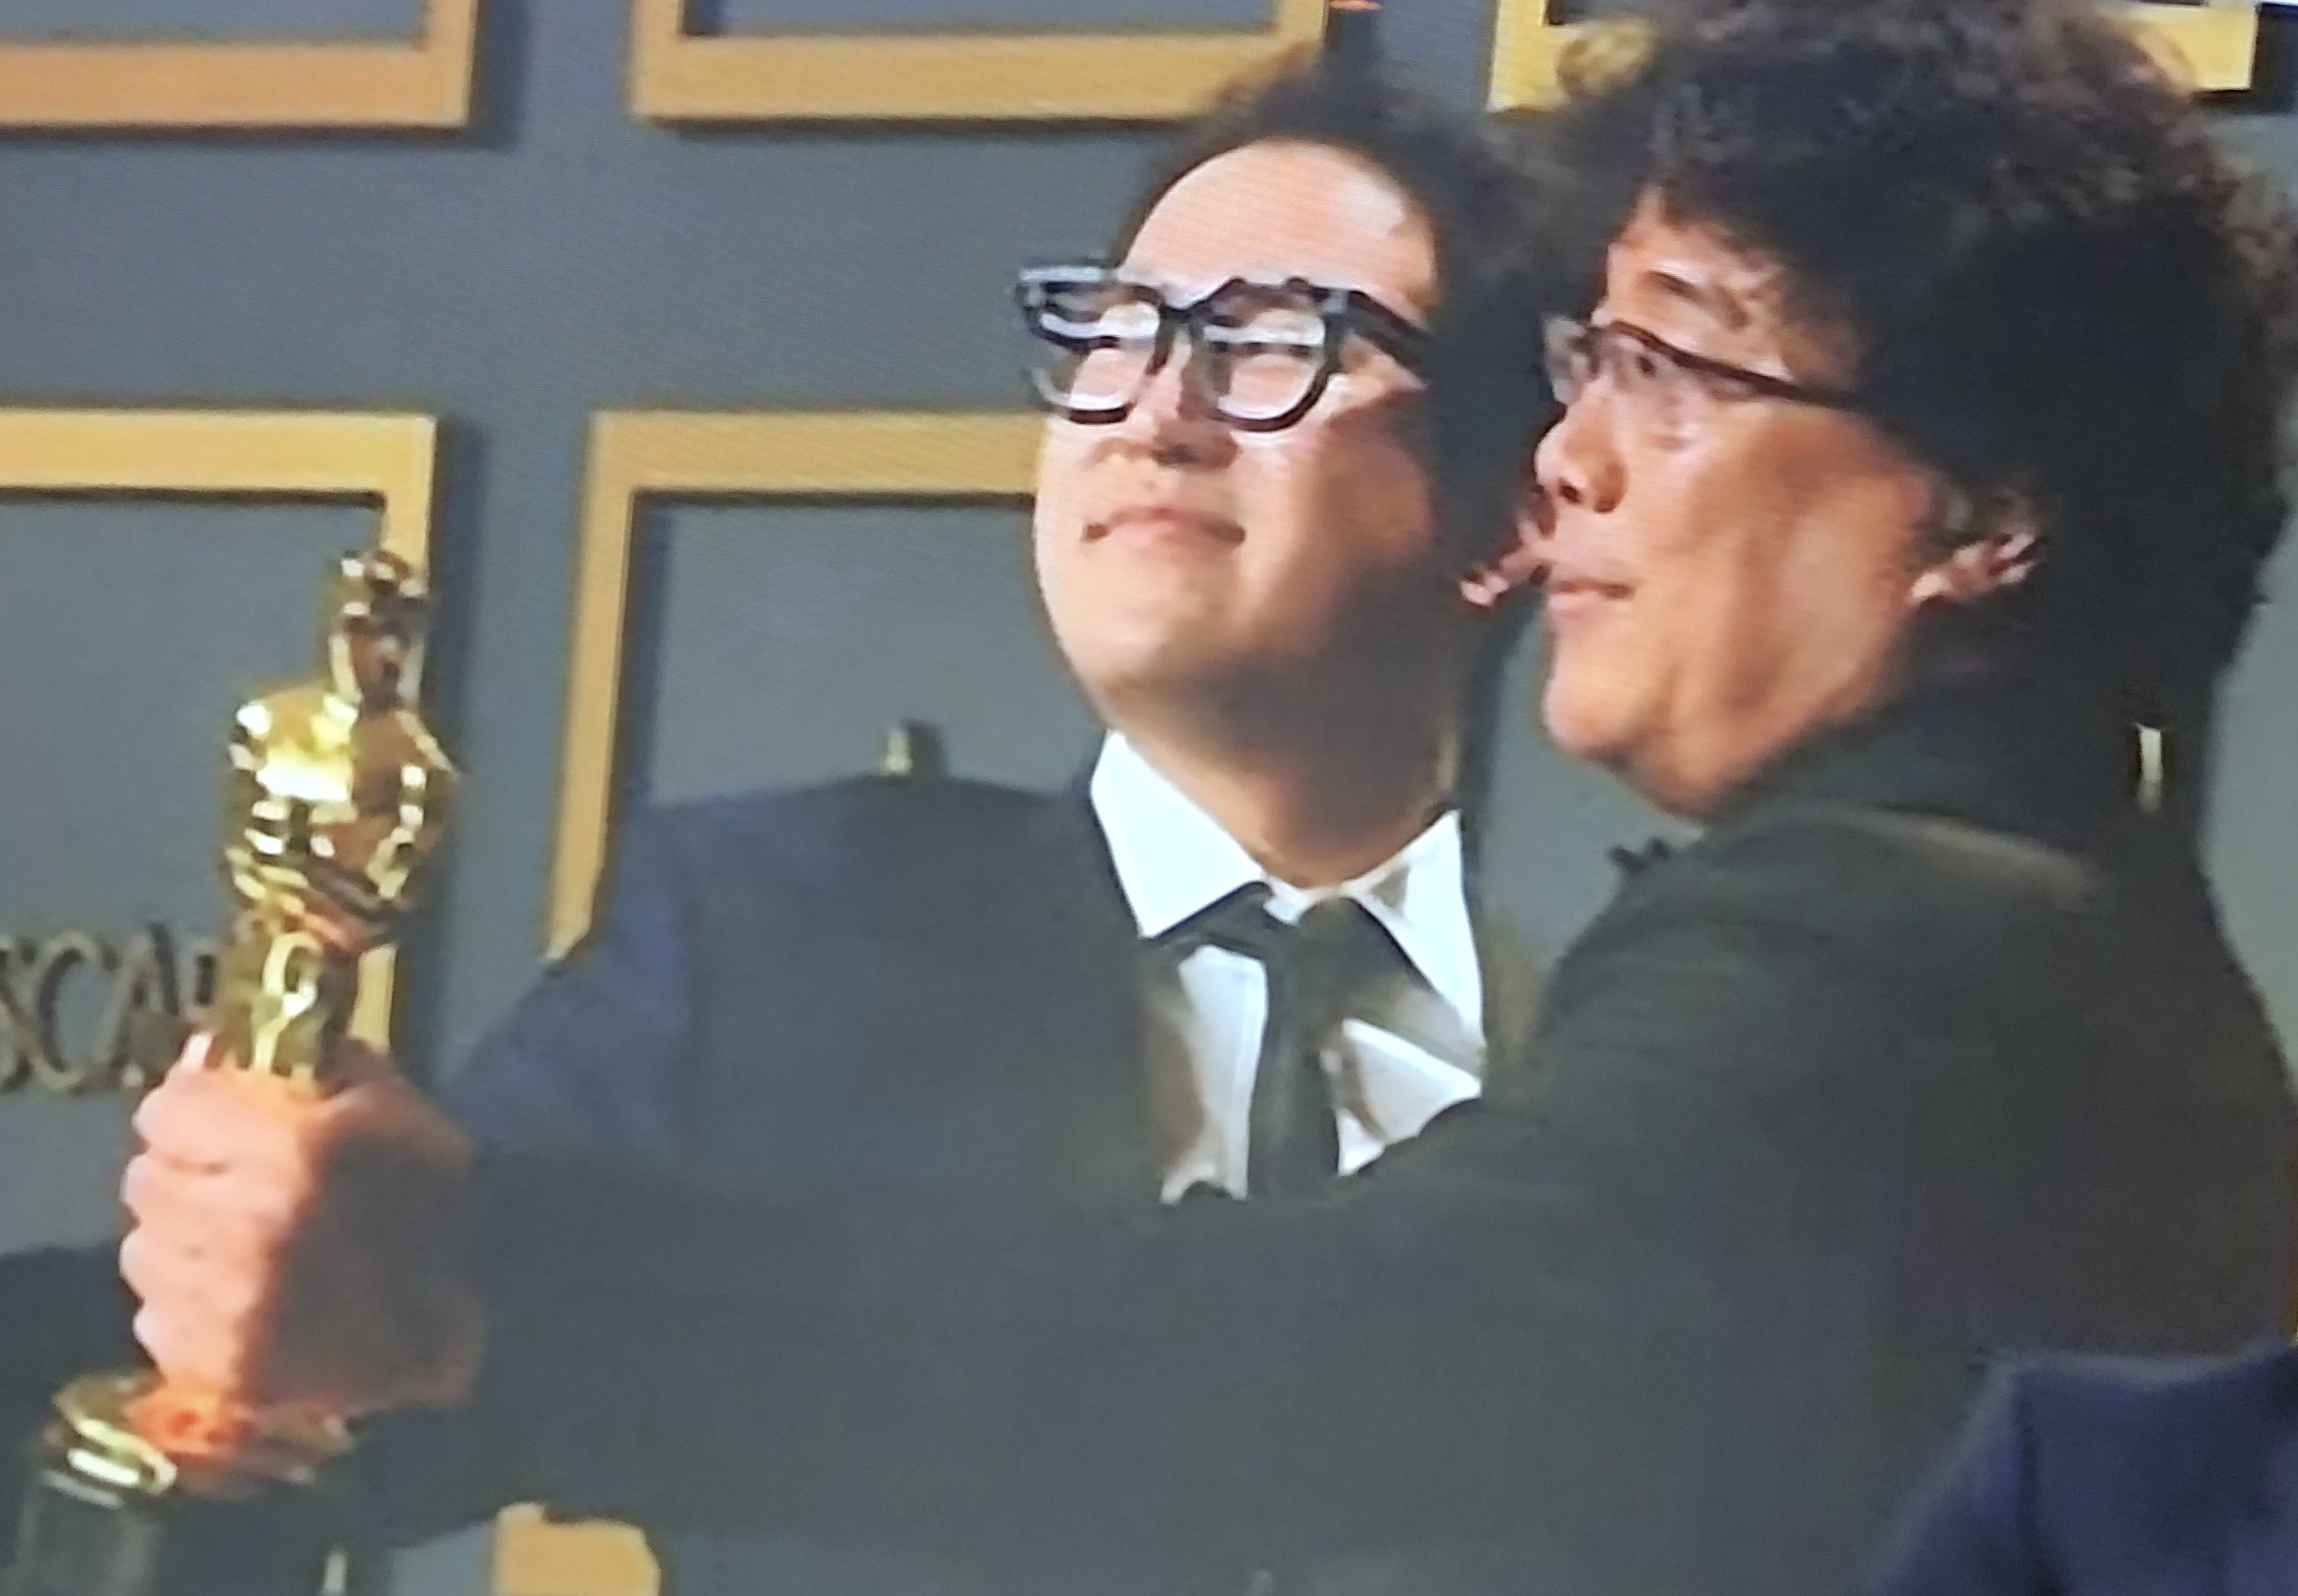 Bong Joon-Ho won best driector and best film for Parasite